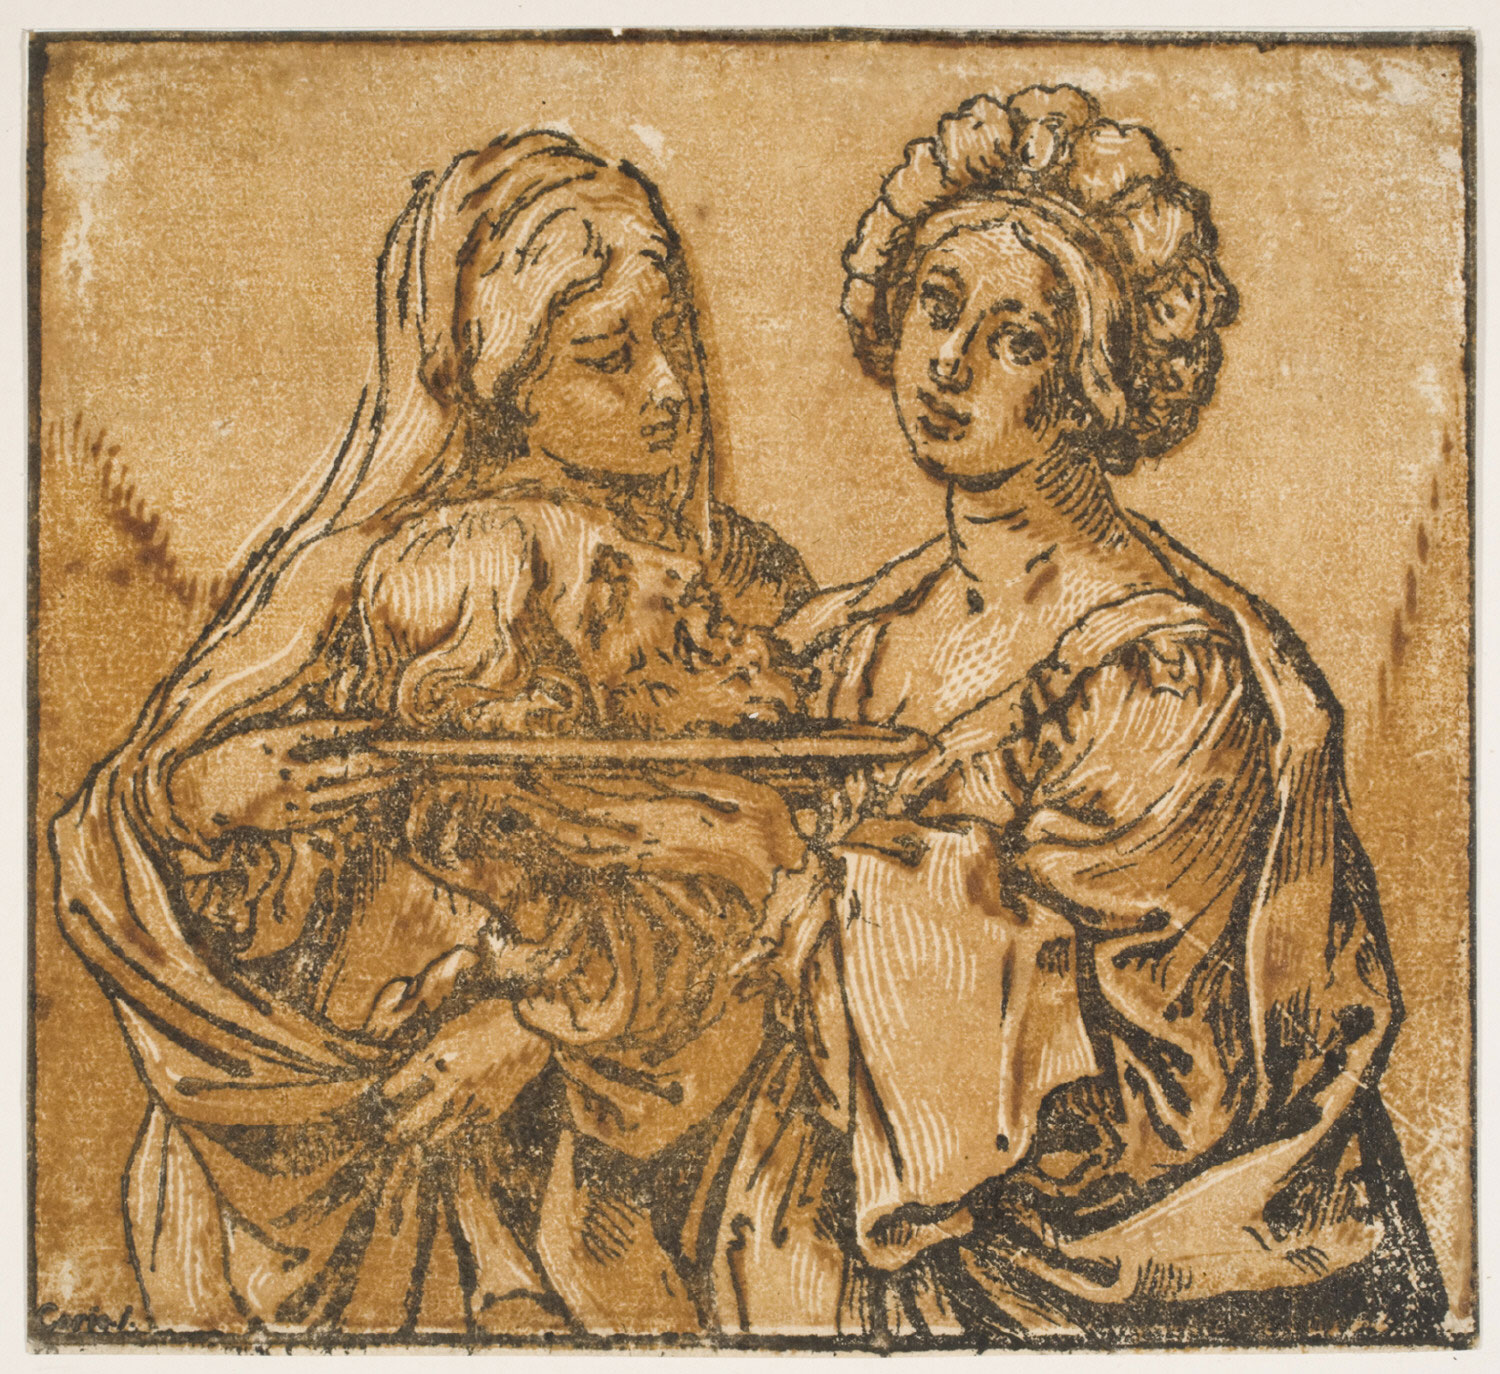 Herodias and Salome with the Head of John the Baptist